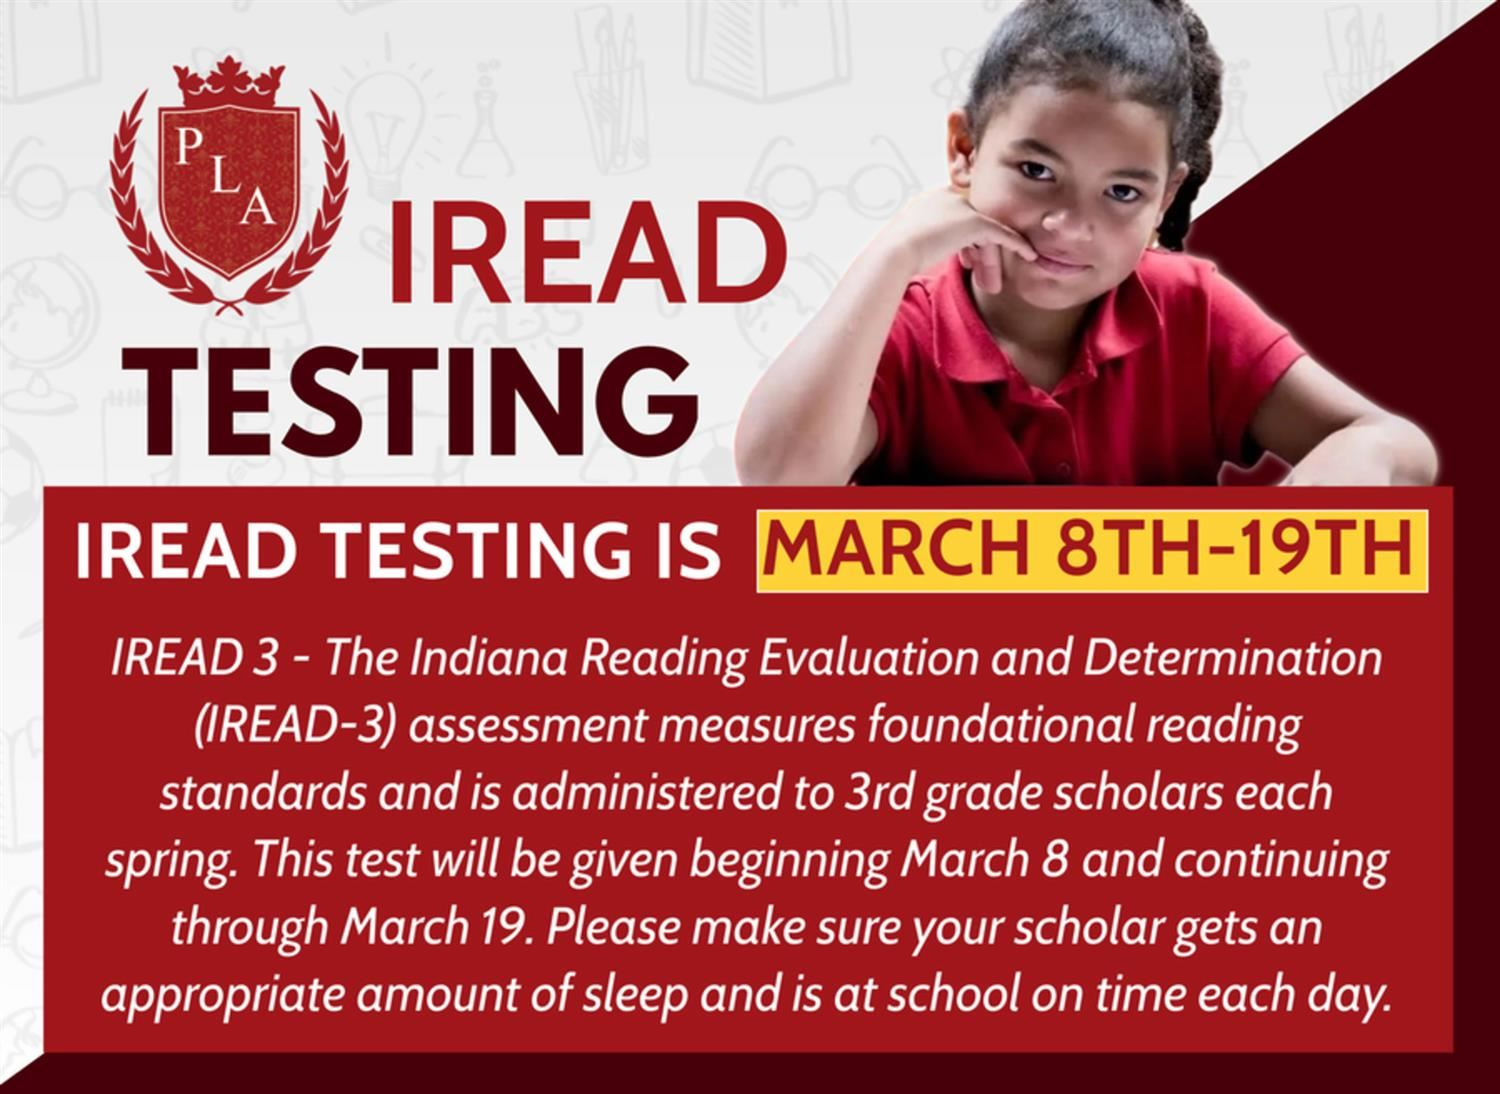 PLA@48 IREAD Testing March 8t